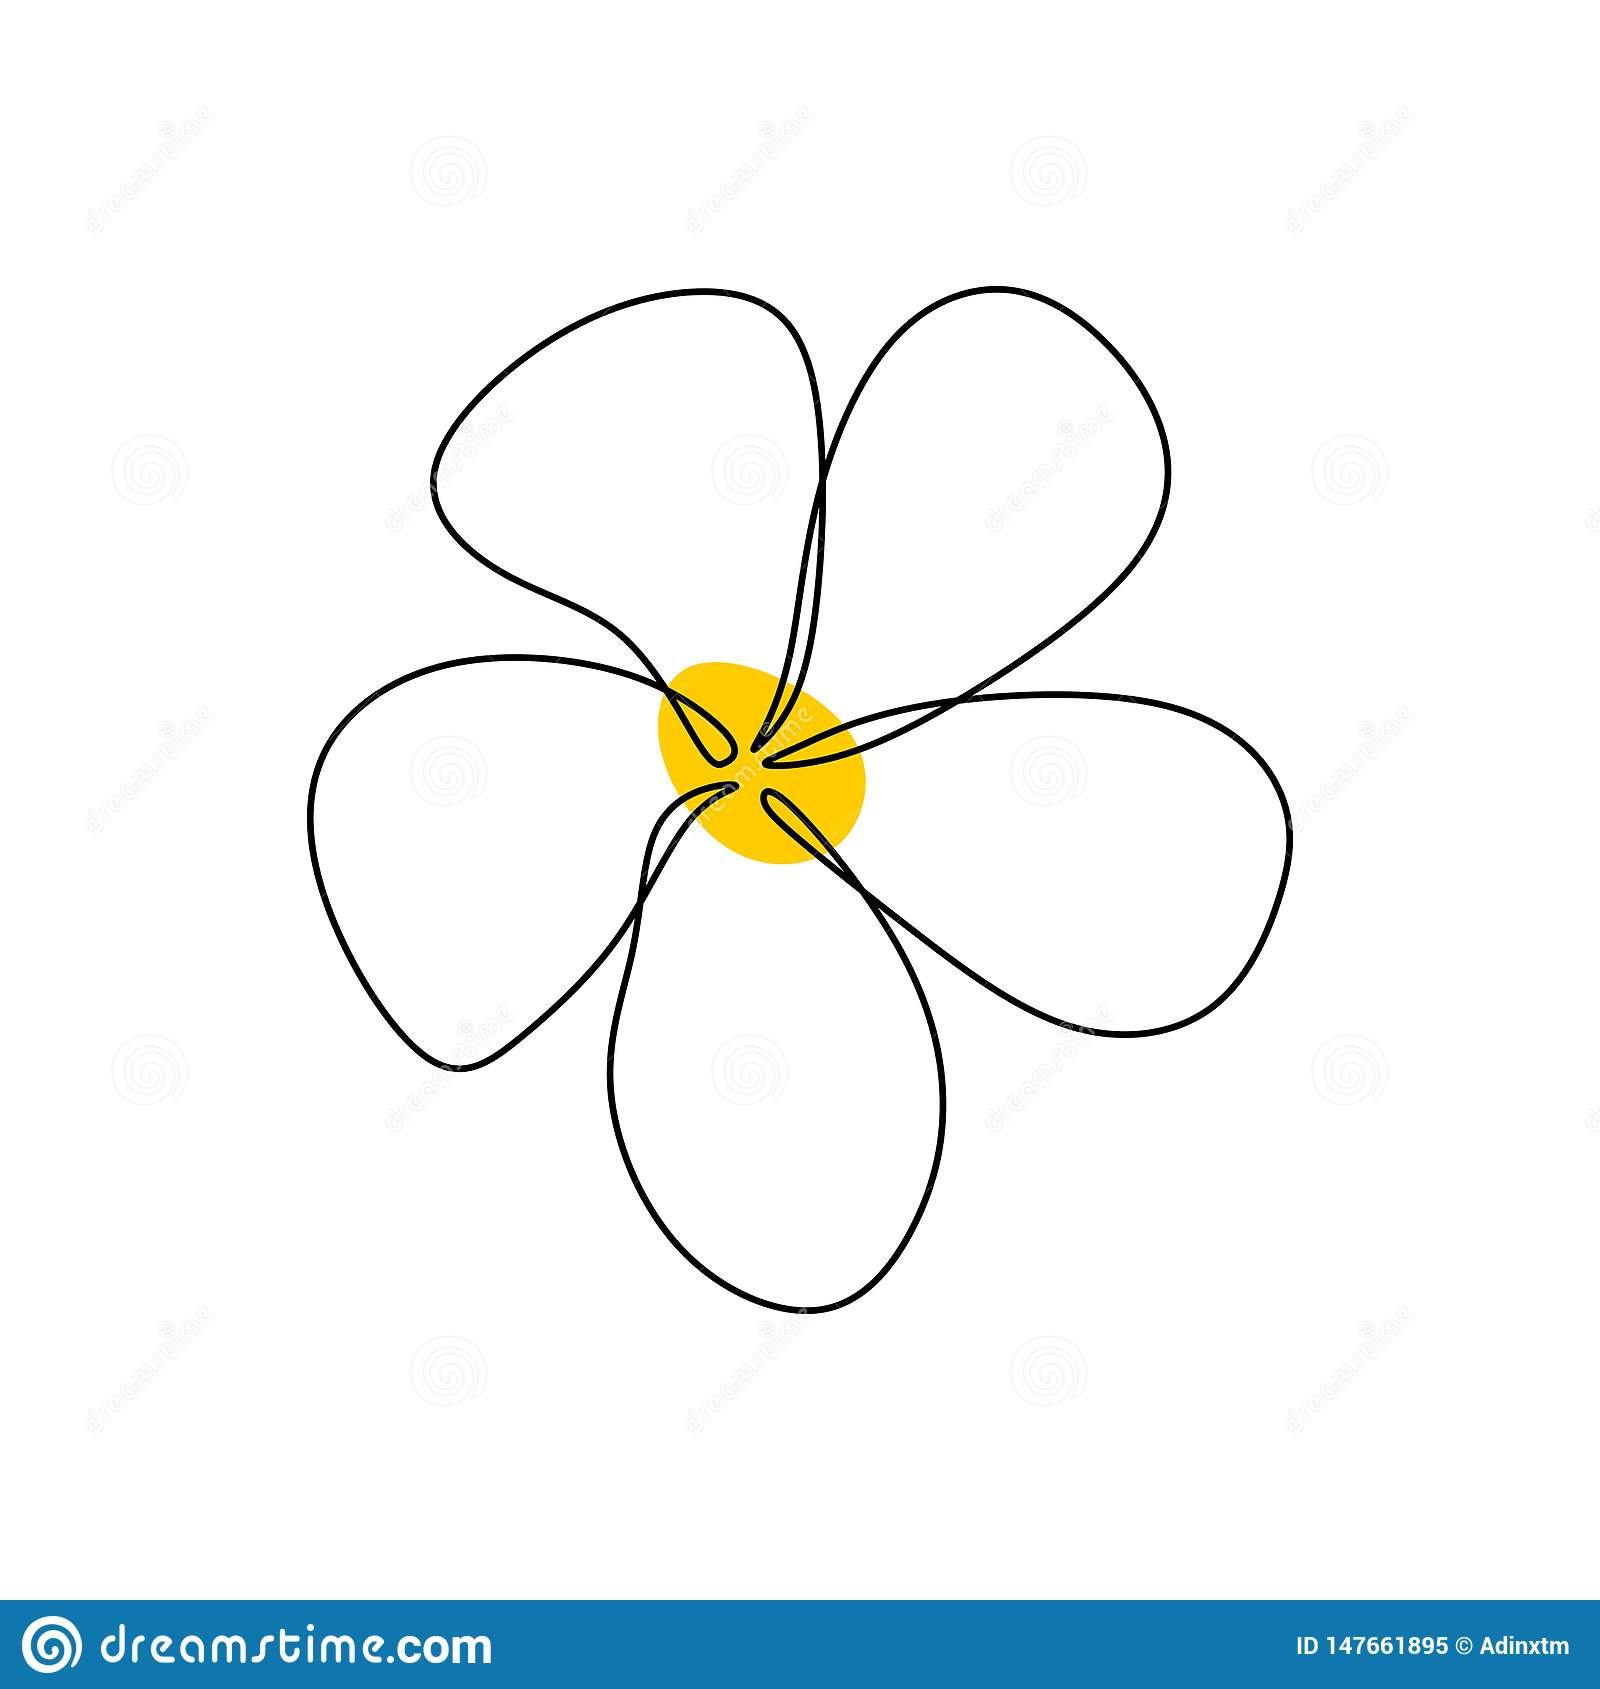 Jasmine continuous one line drawing balinese flower minimalist design